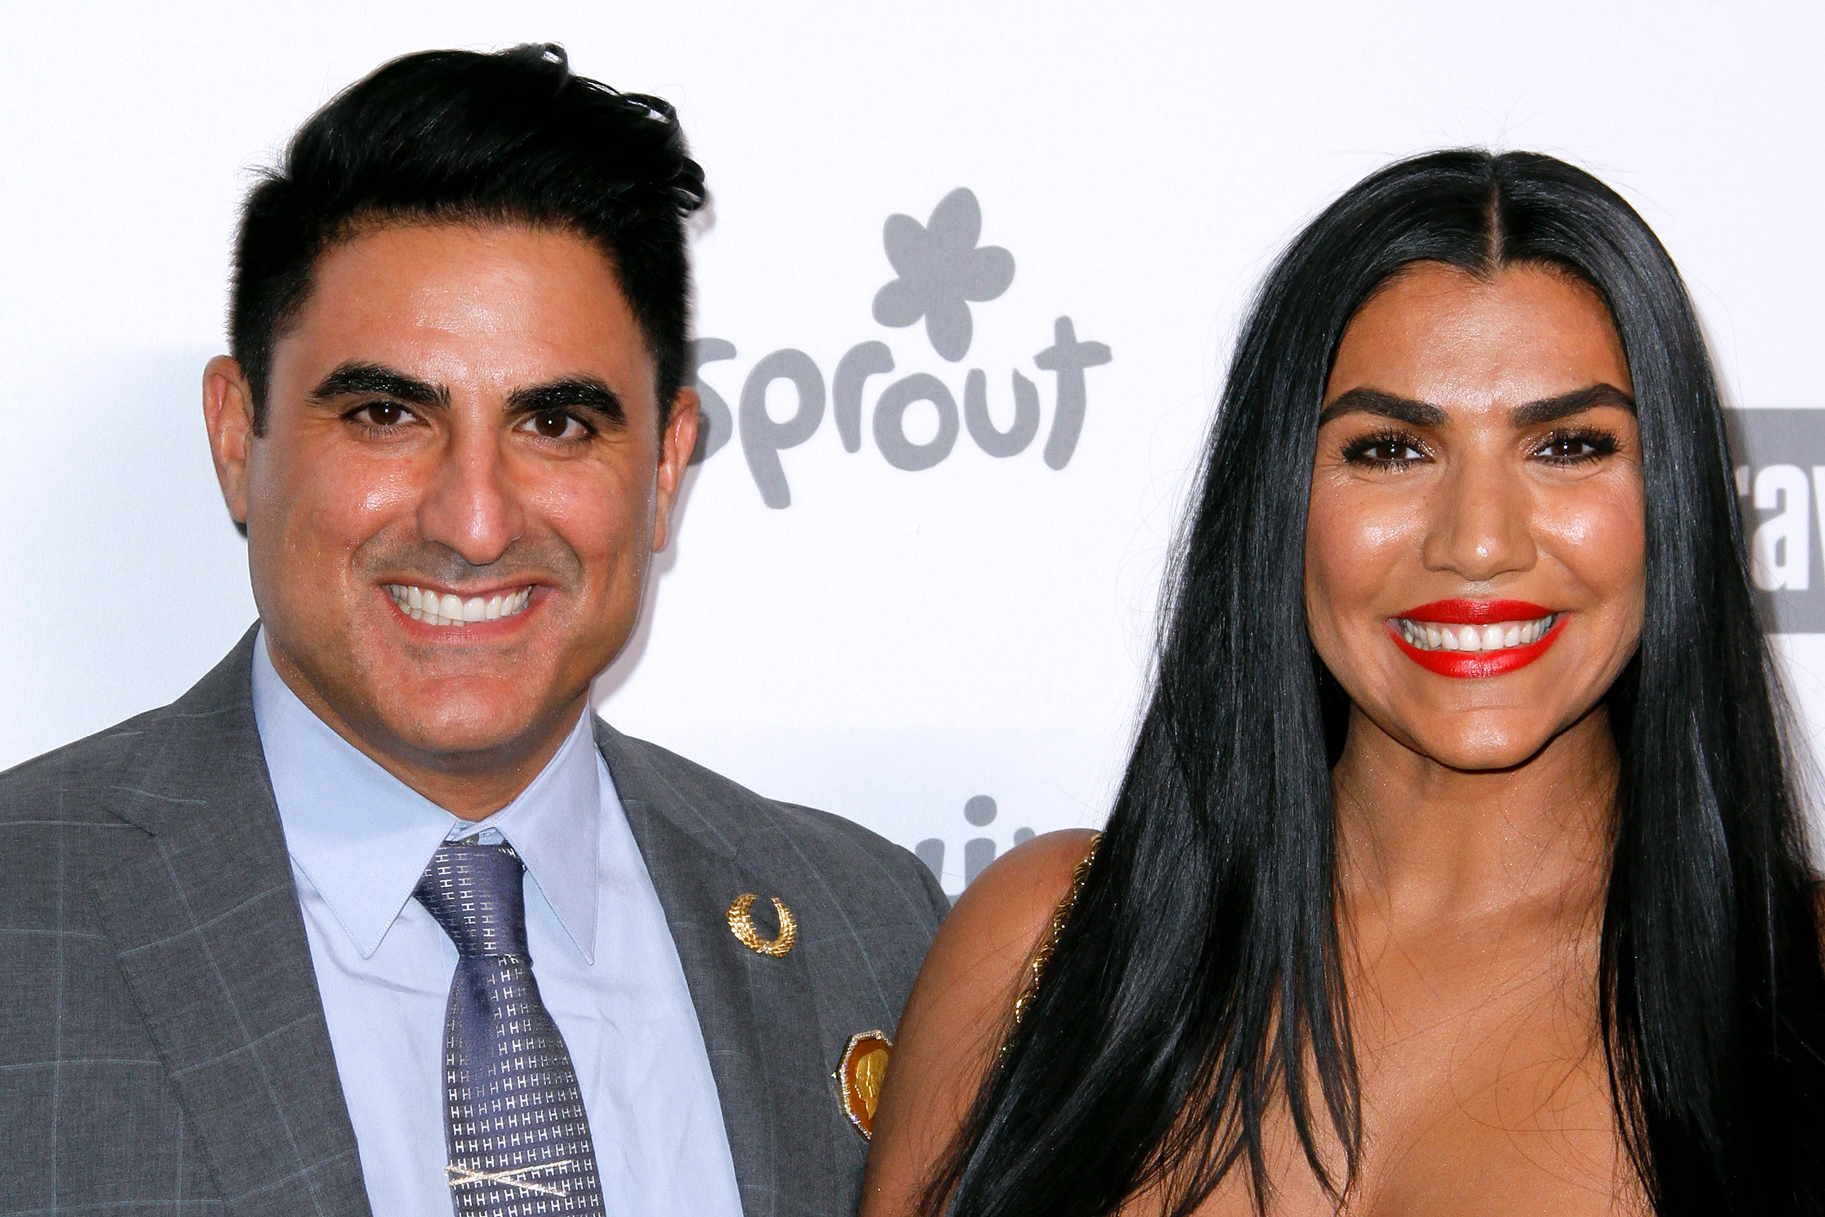 Asa Soltan Reza Farahan Friendship